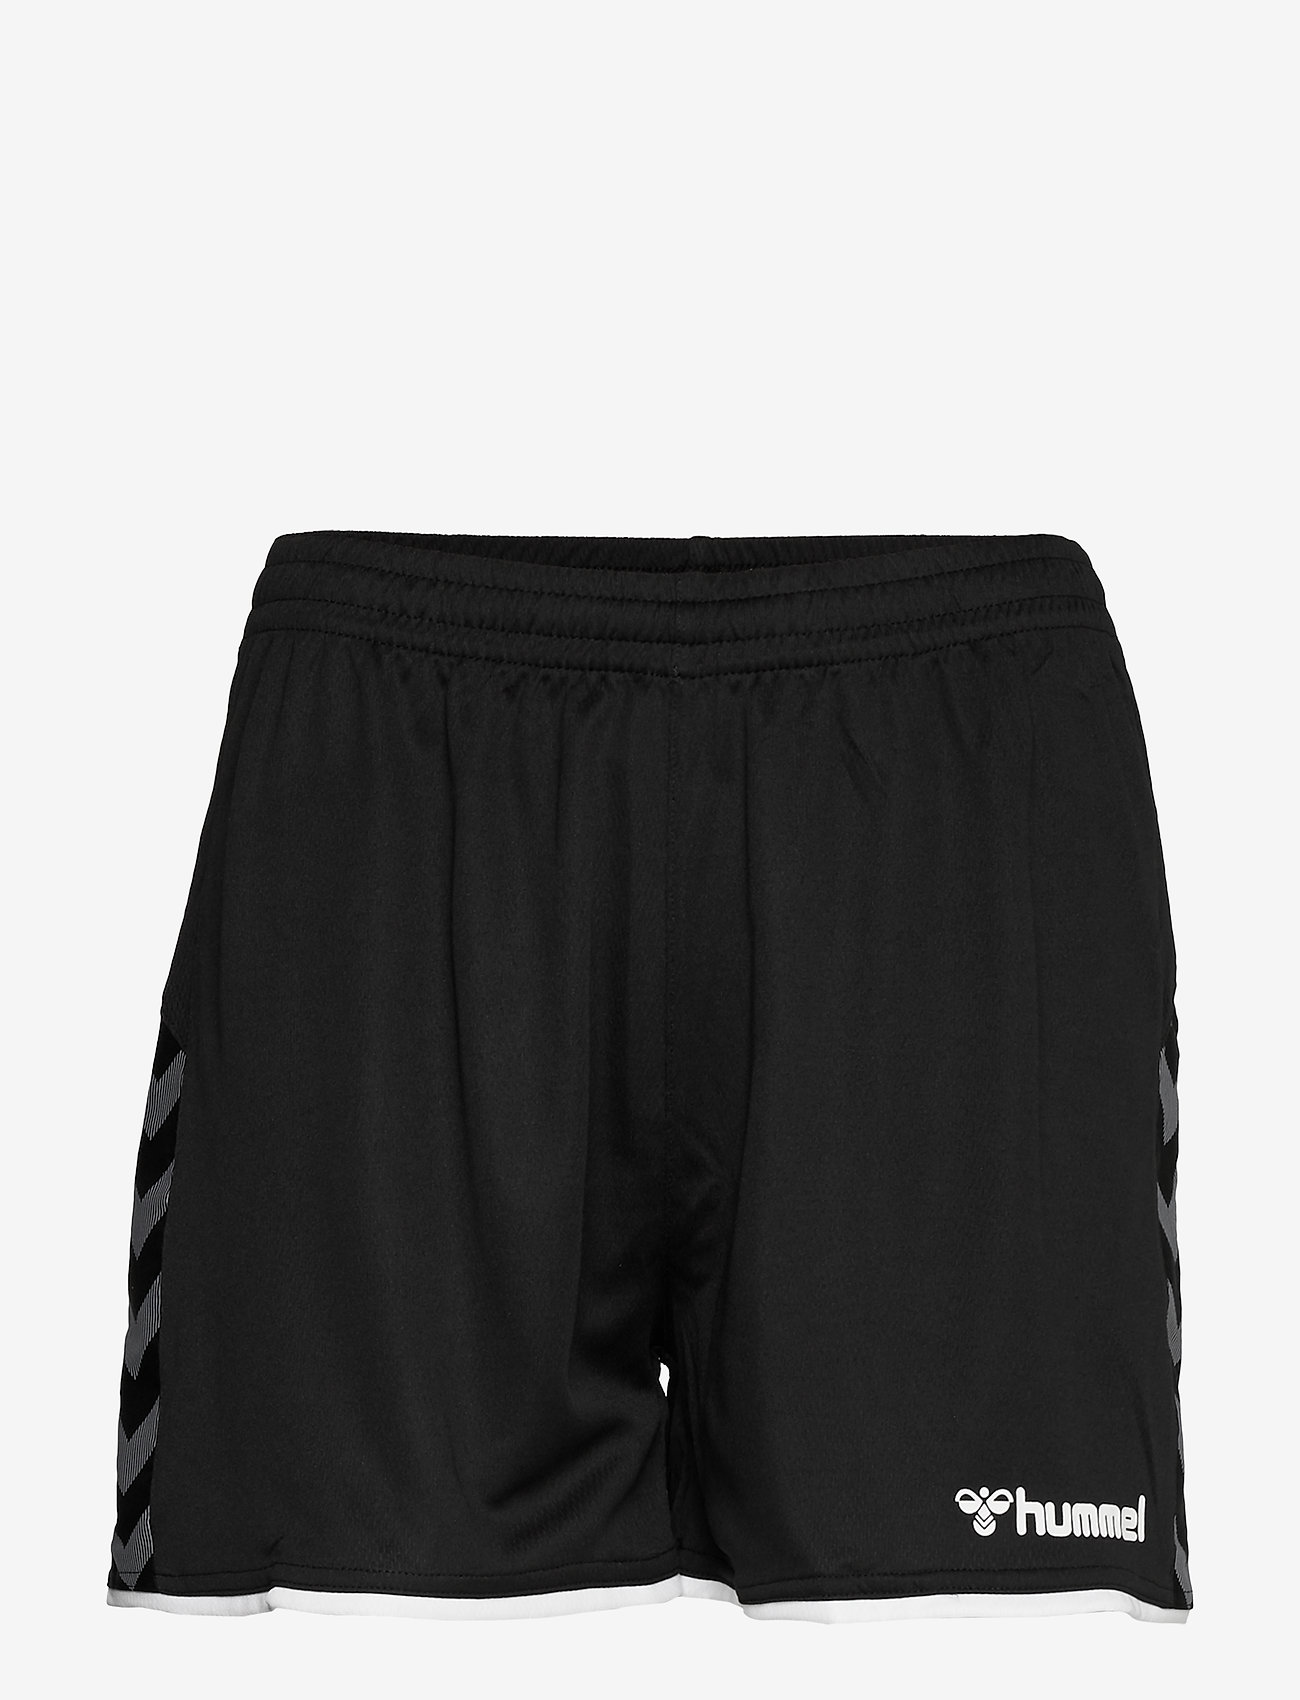 Hummel - hmlAUTHENTIC POLY SHORTS WOMAN - treenishortsit - black/white - 0